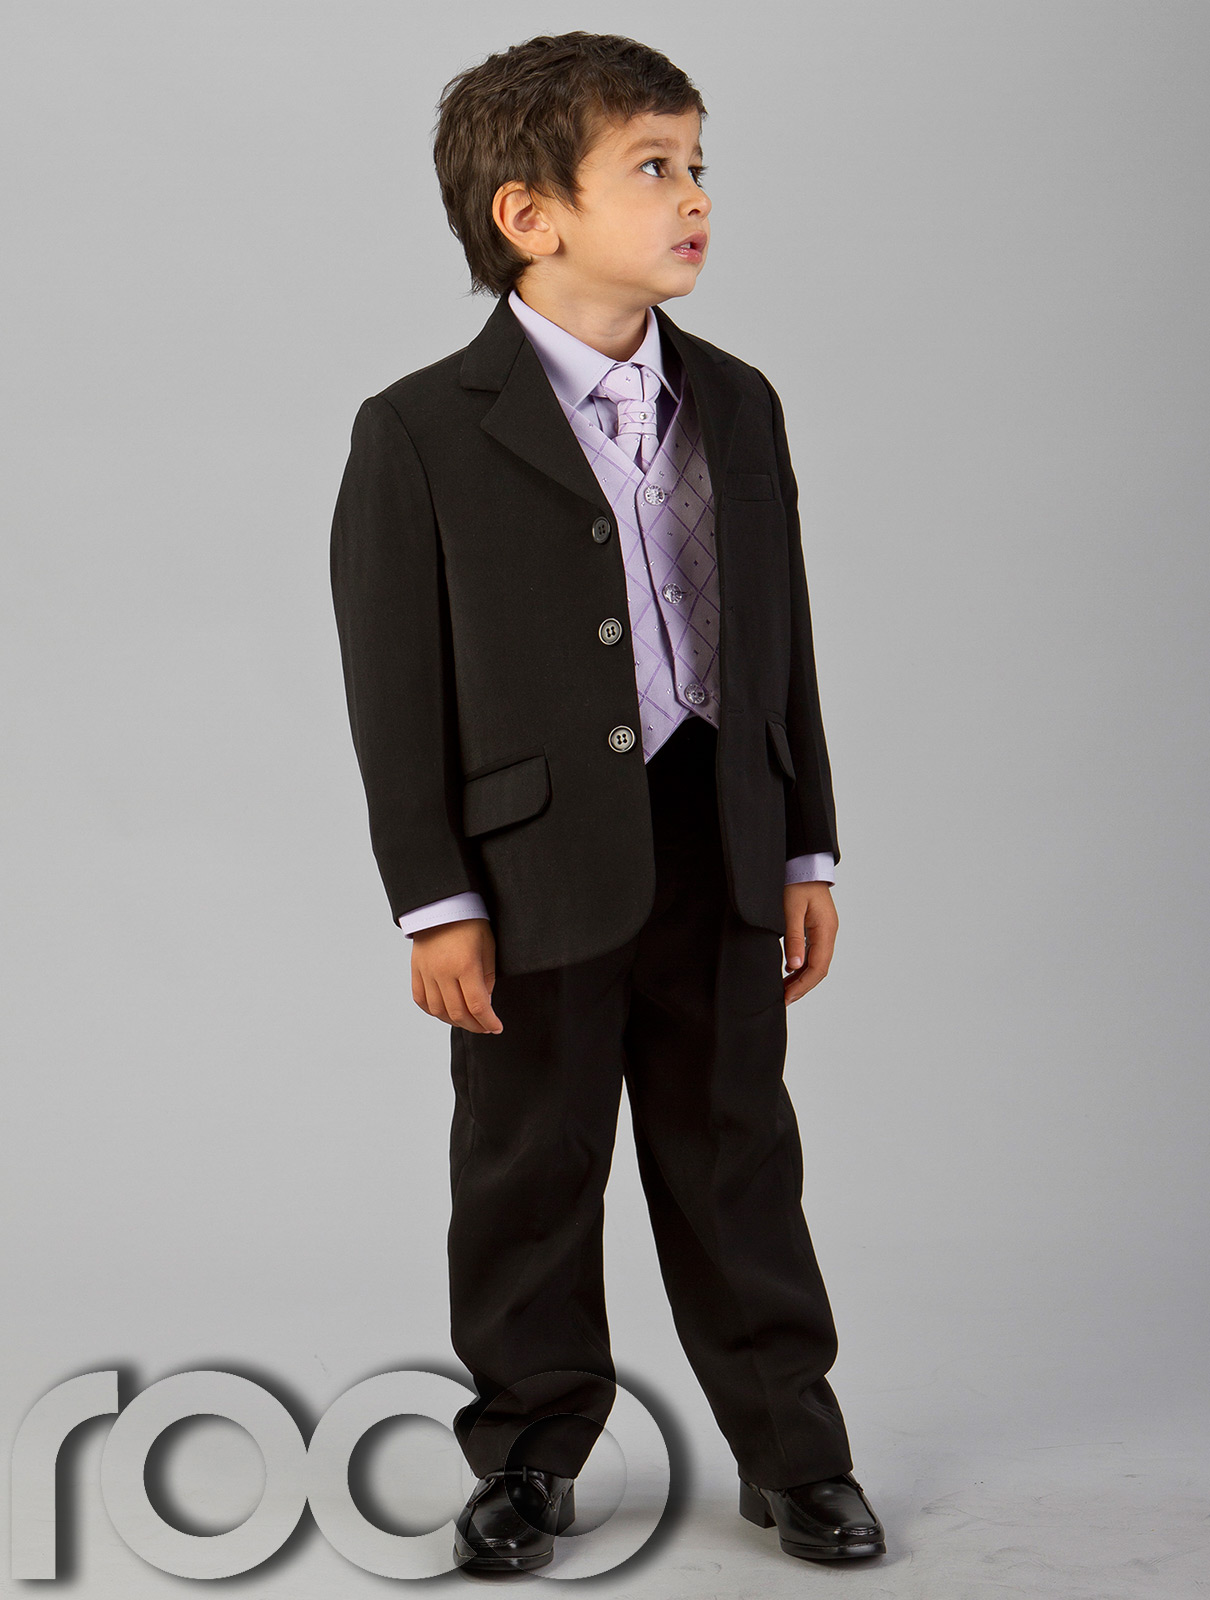 We are a wholesale distributor of boys suit wholesale. Little misses will surely make their moms grab for those